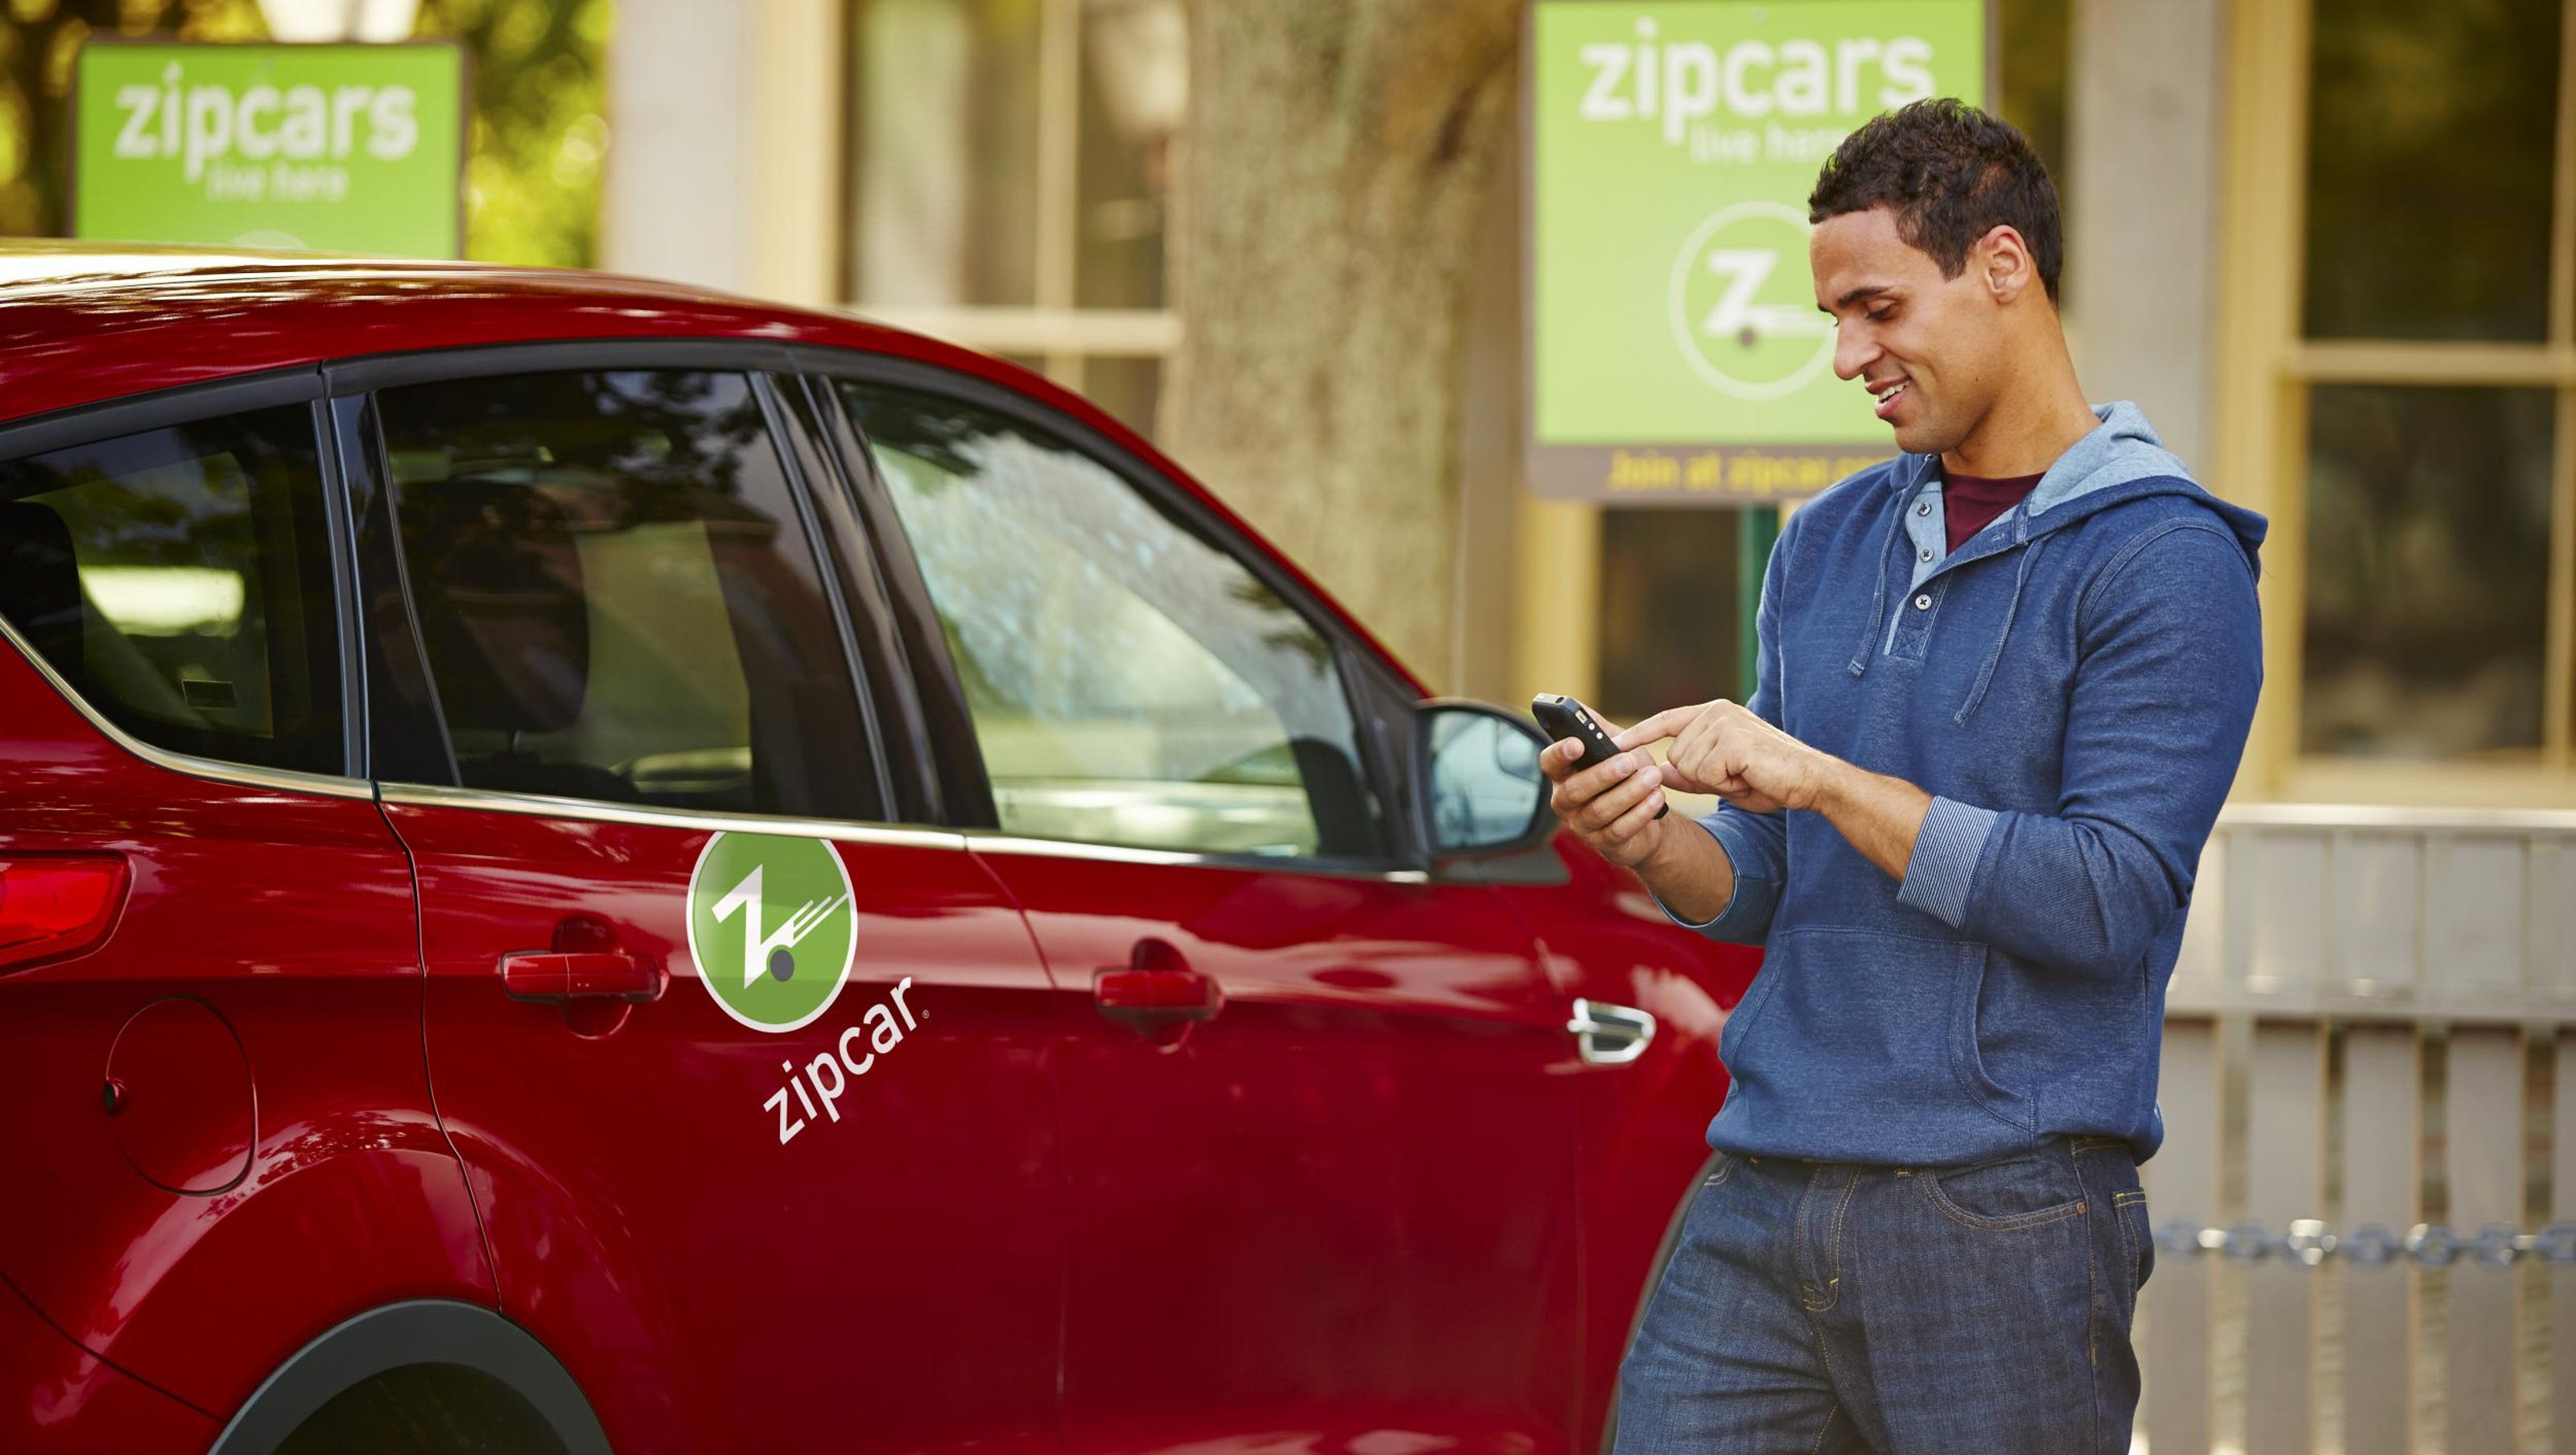 Zipcar Car Sharing Service Comes To Clemson